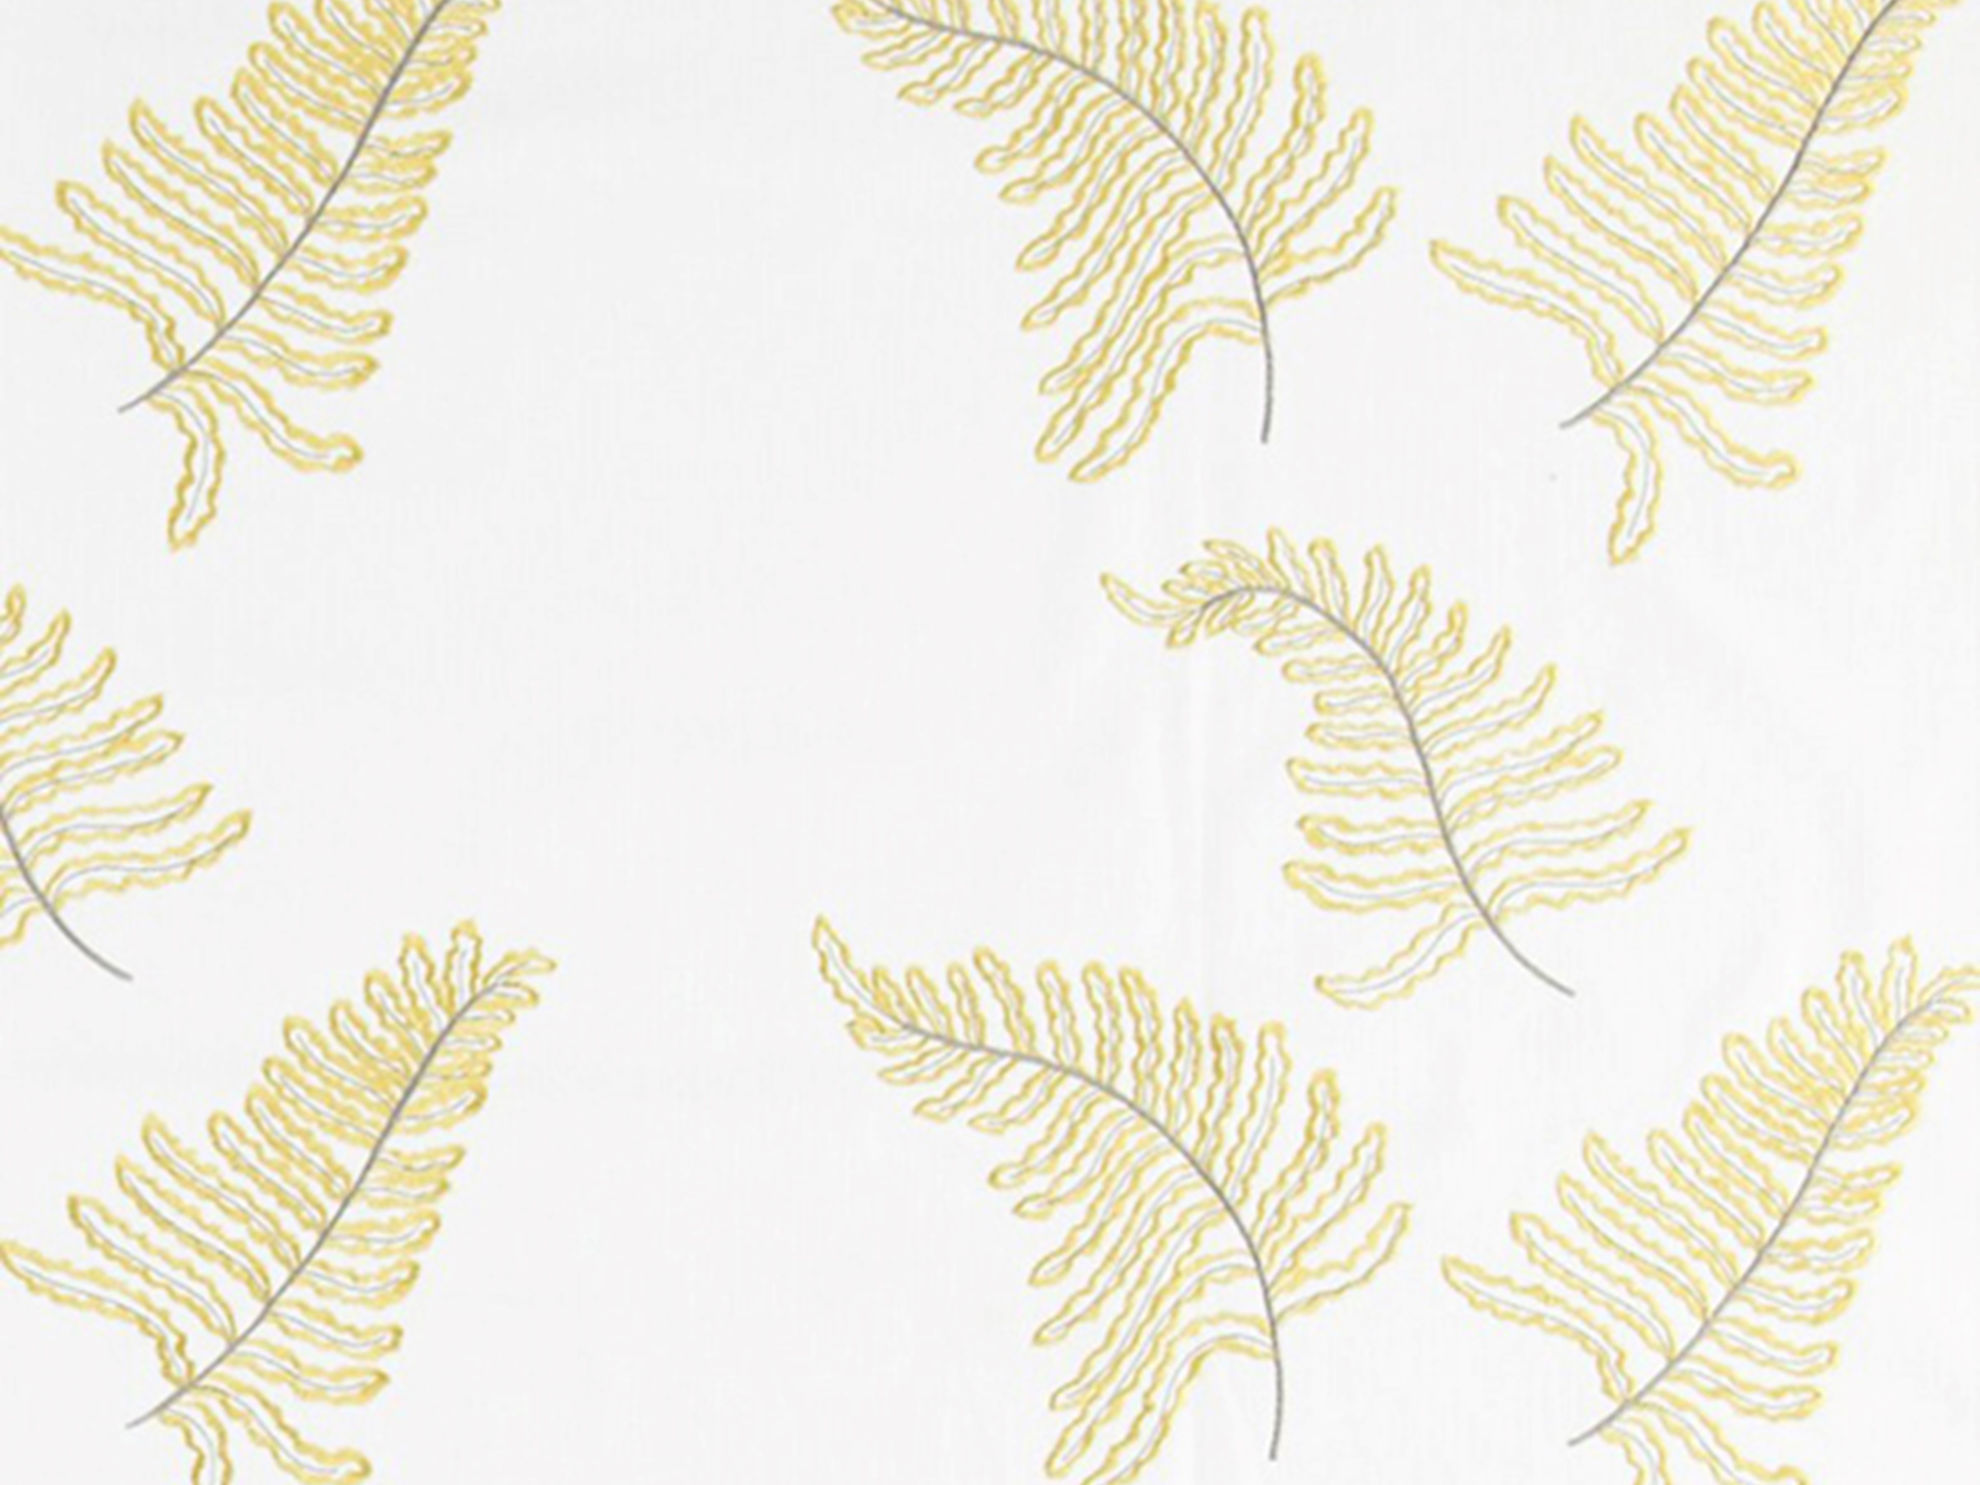 Ferns - Gold